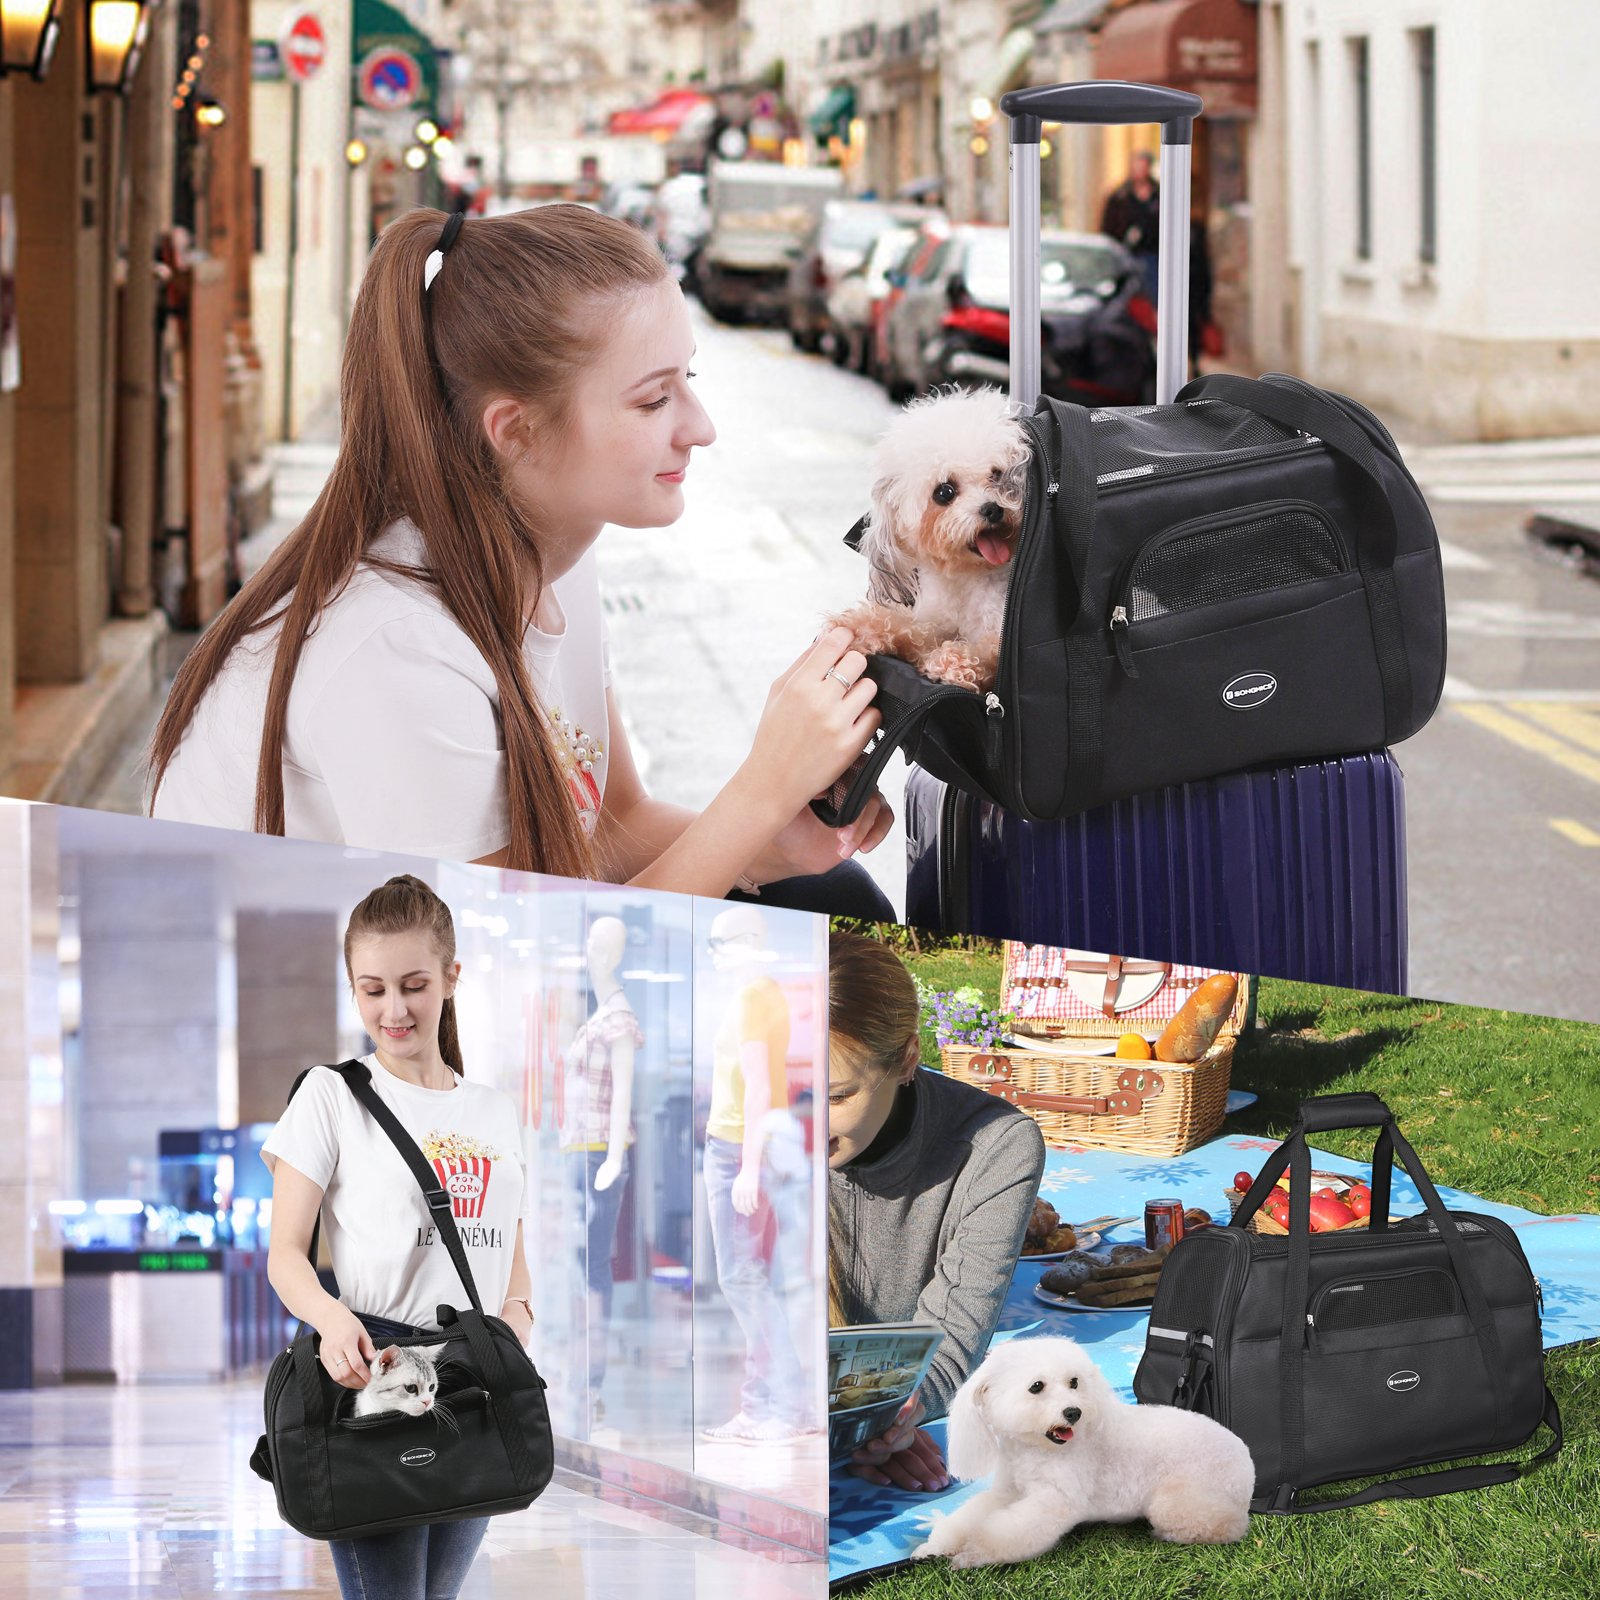 SONGMICS Foldable Pet Carrier, Soft-Sided, for Travel, Airline Approved, Small Dog/Cat Bags with Shoulder Strap, Garbage Bag Included UPDC42BK by SONGMICS (Image #7)